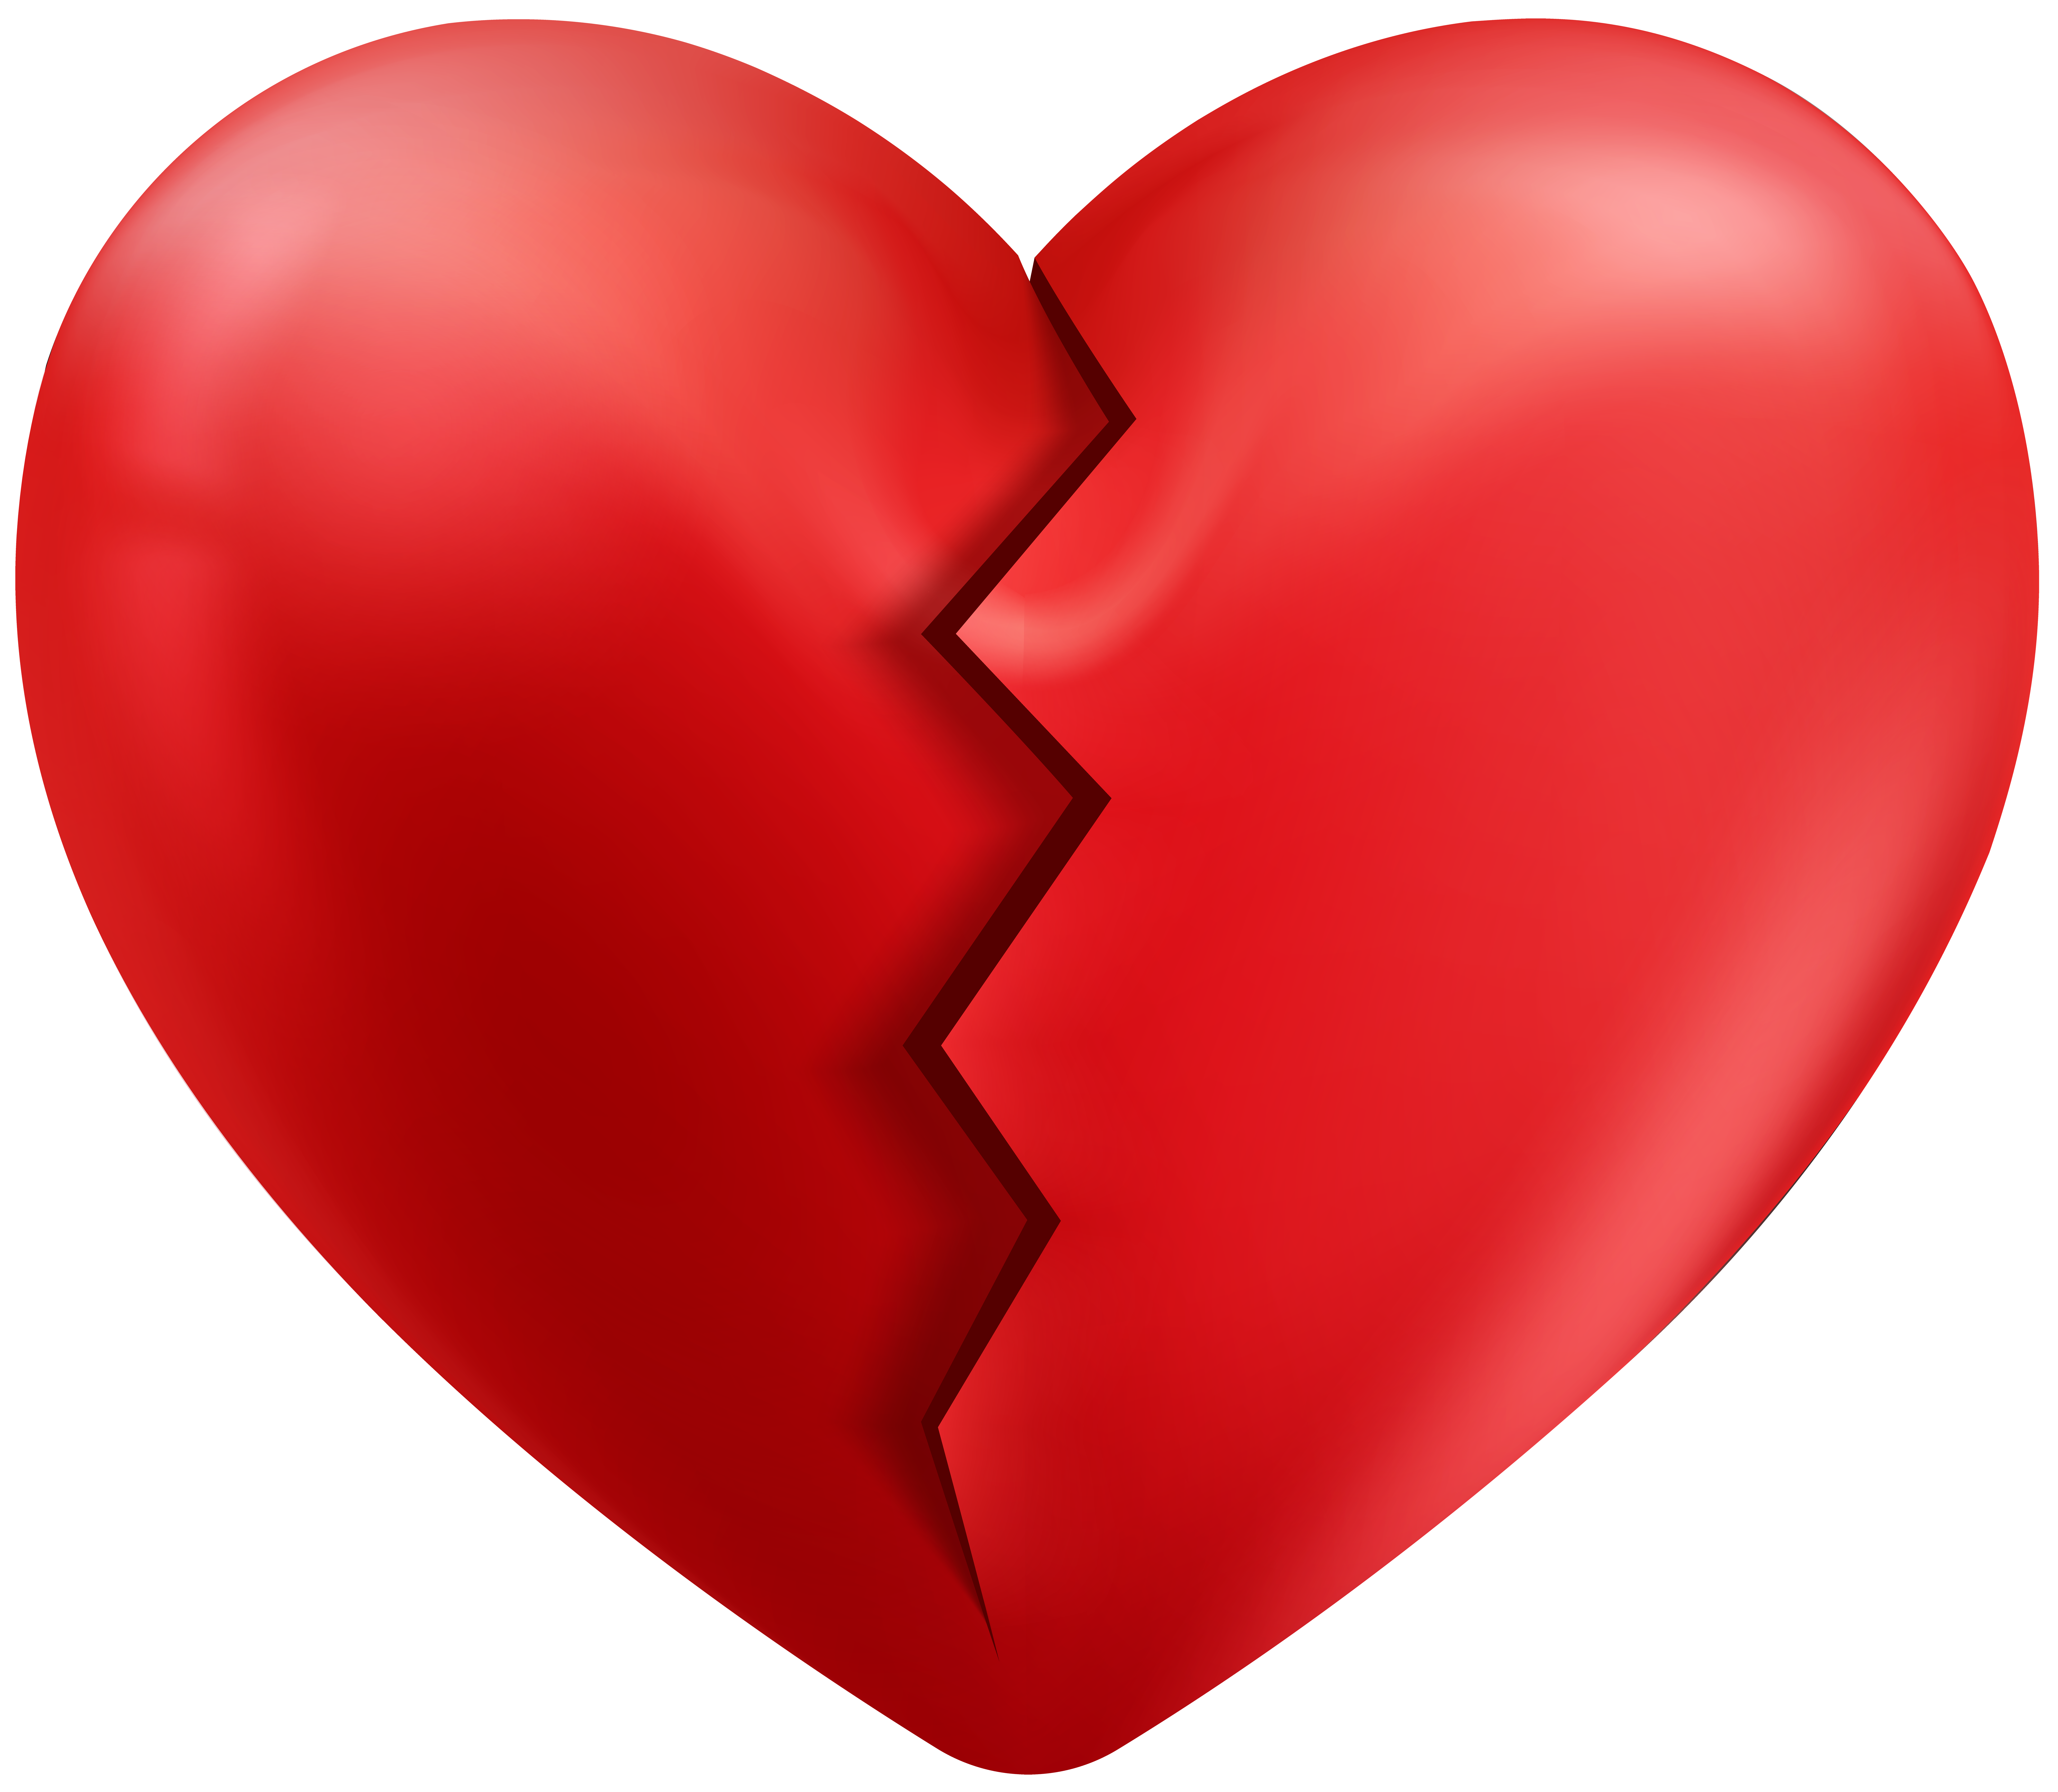 Body heart clipart transparent Cracked Heart Transparent PNG Clip Art Image | Gallery Yopriceville ... transparent